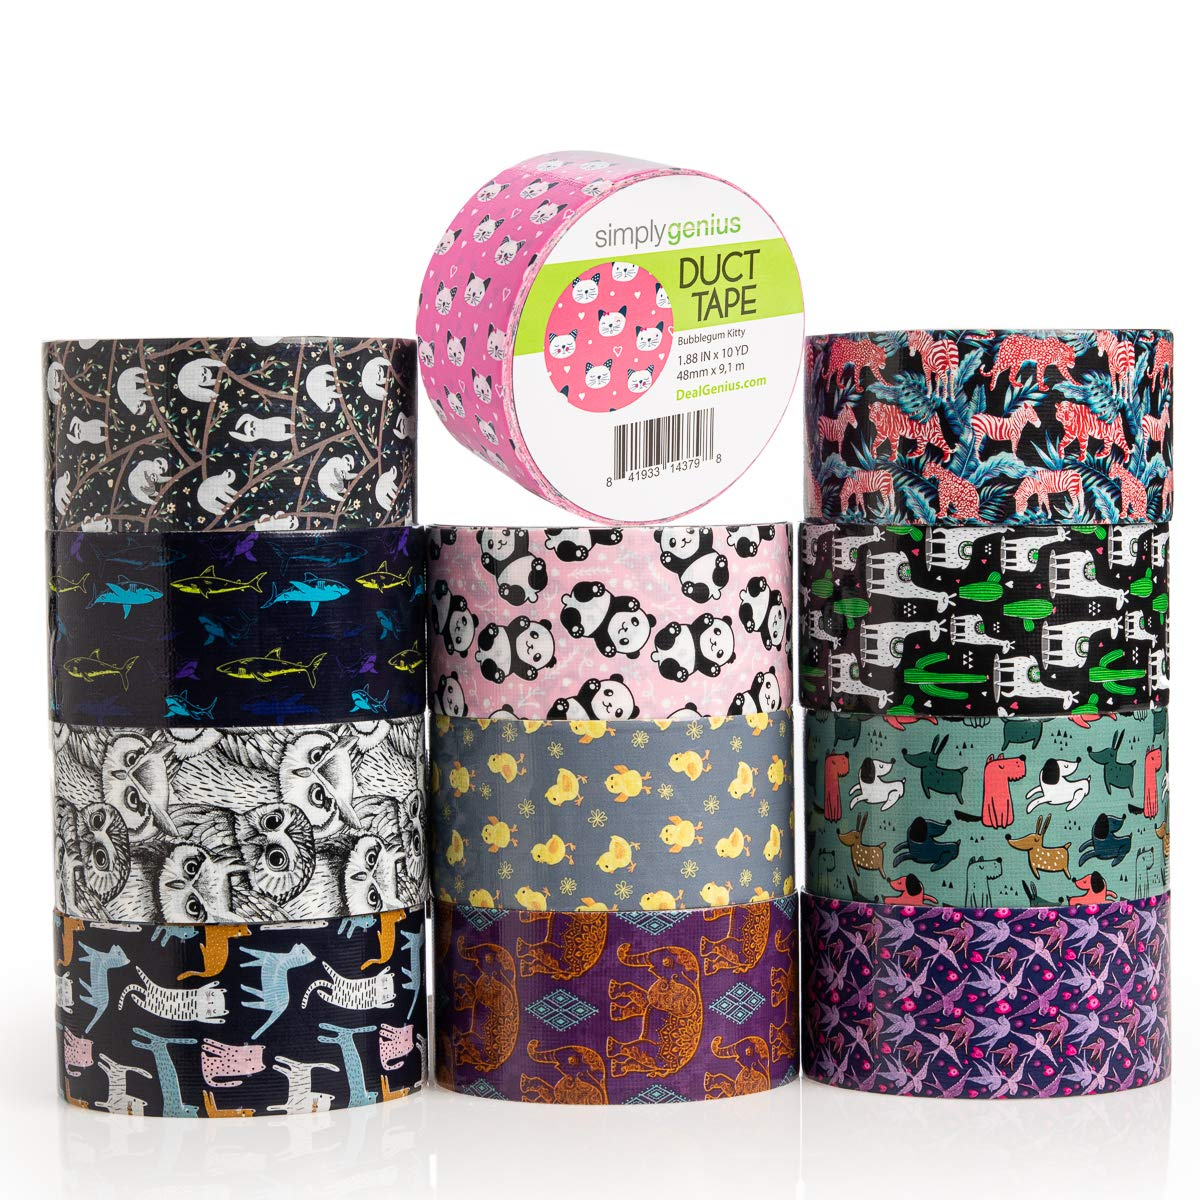 Simply Genius (12 Pack) Patterned and Colored Duct Tape Variety Pack Tape Rolls Craft Supplies for Kids Adults Patterned Duct Tape Colors, Animal Patterns by Simply Genius